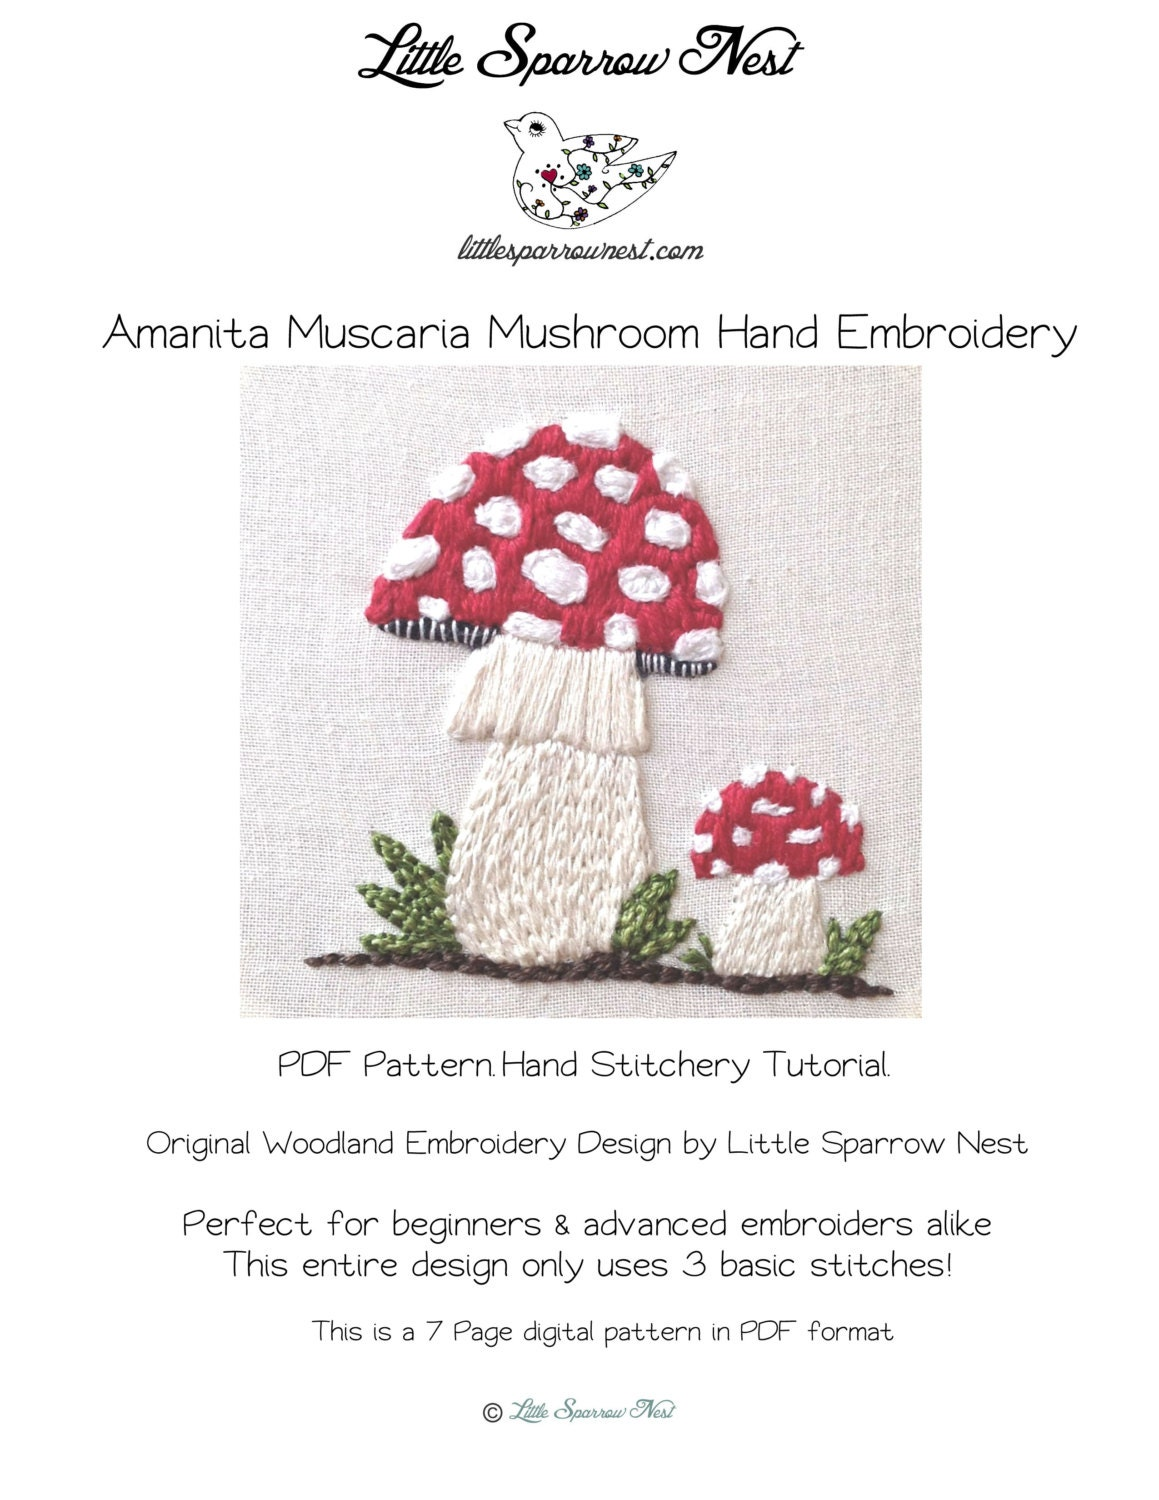 Woodland mushroom cute hand embroidery pattern and